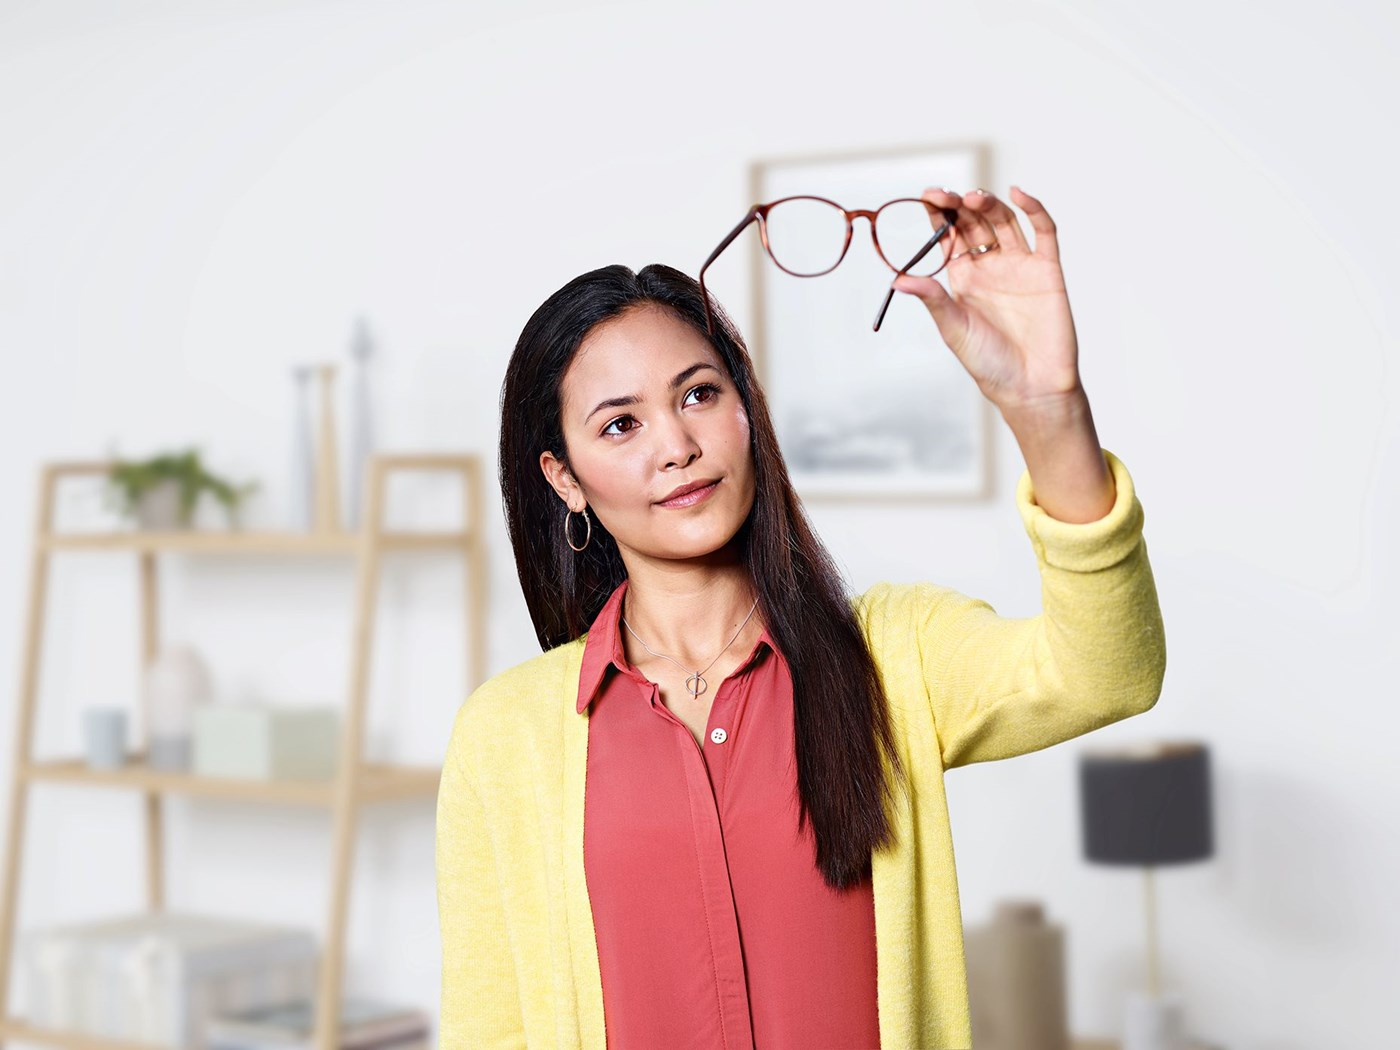 Woman holding eyeglasses up to light looking making sure they are clean